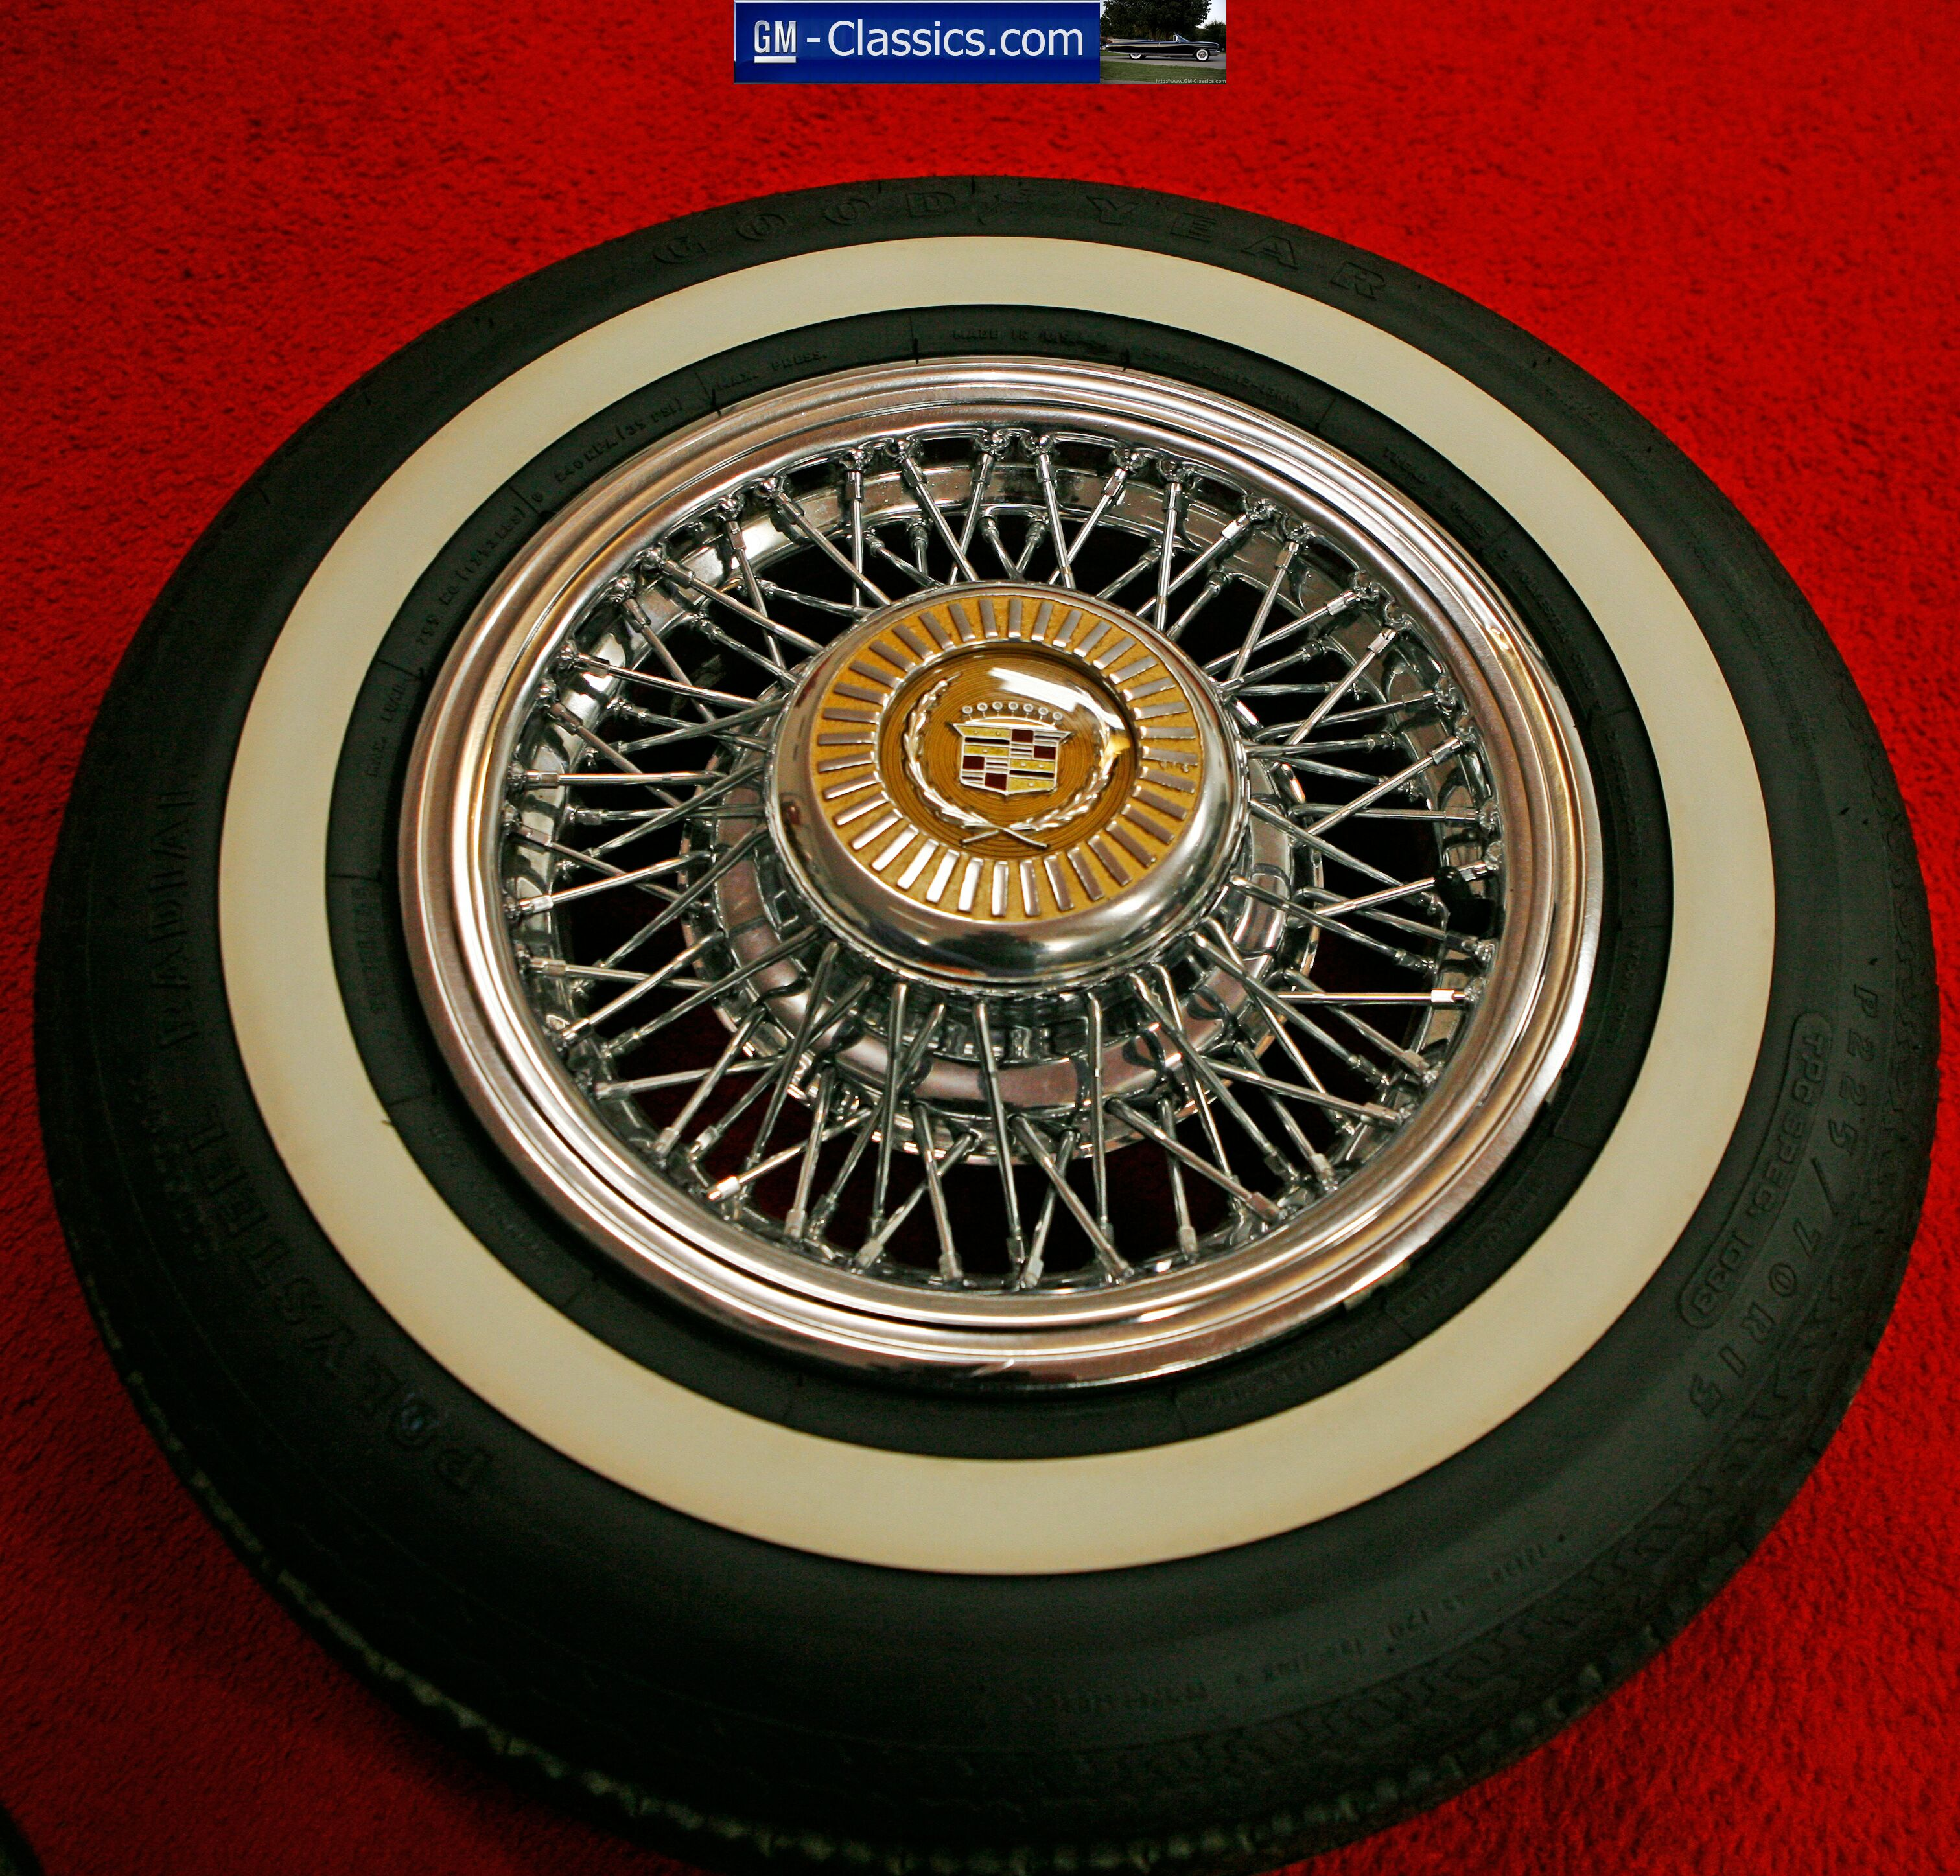 archive forums vogue owners for cars tires original forum t cadillac